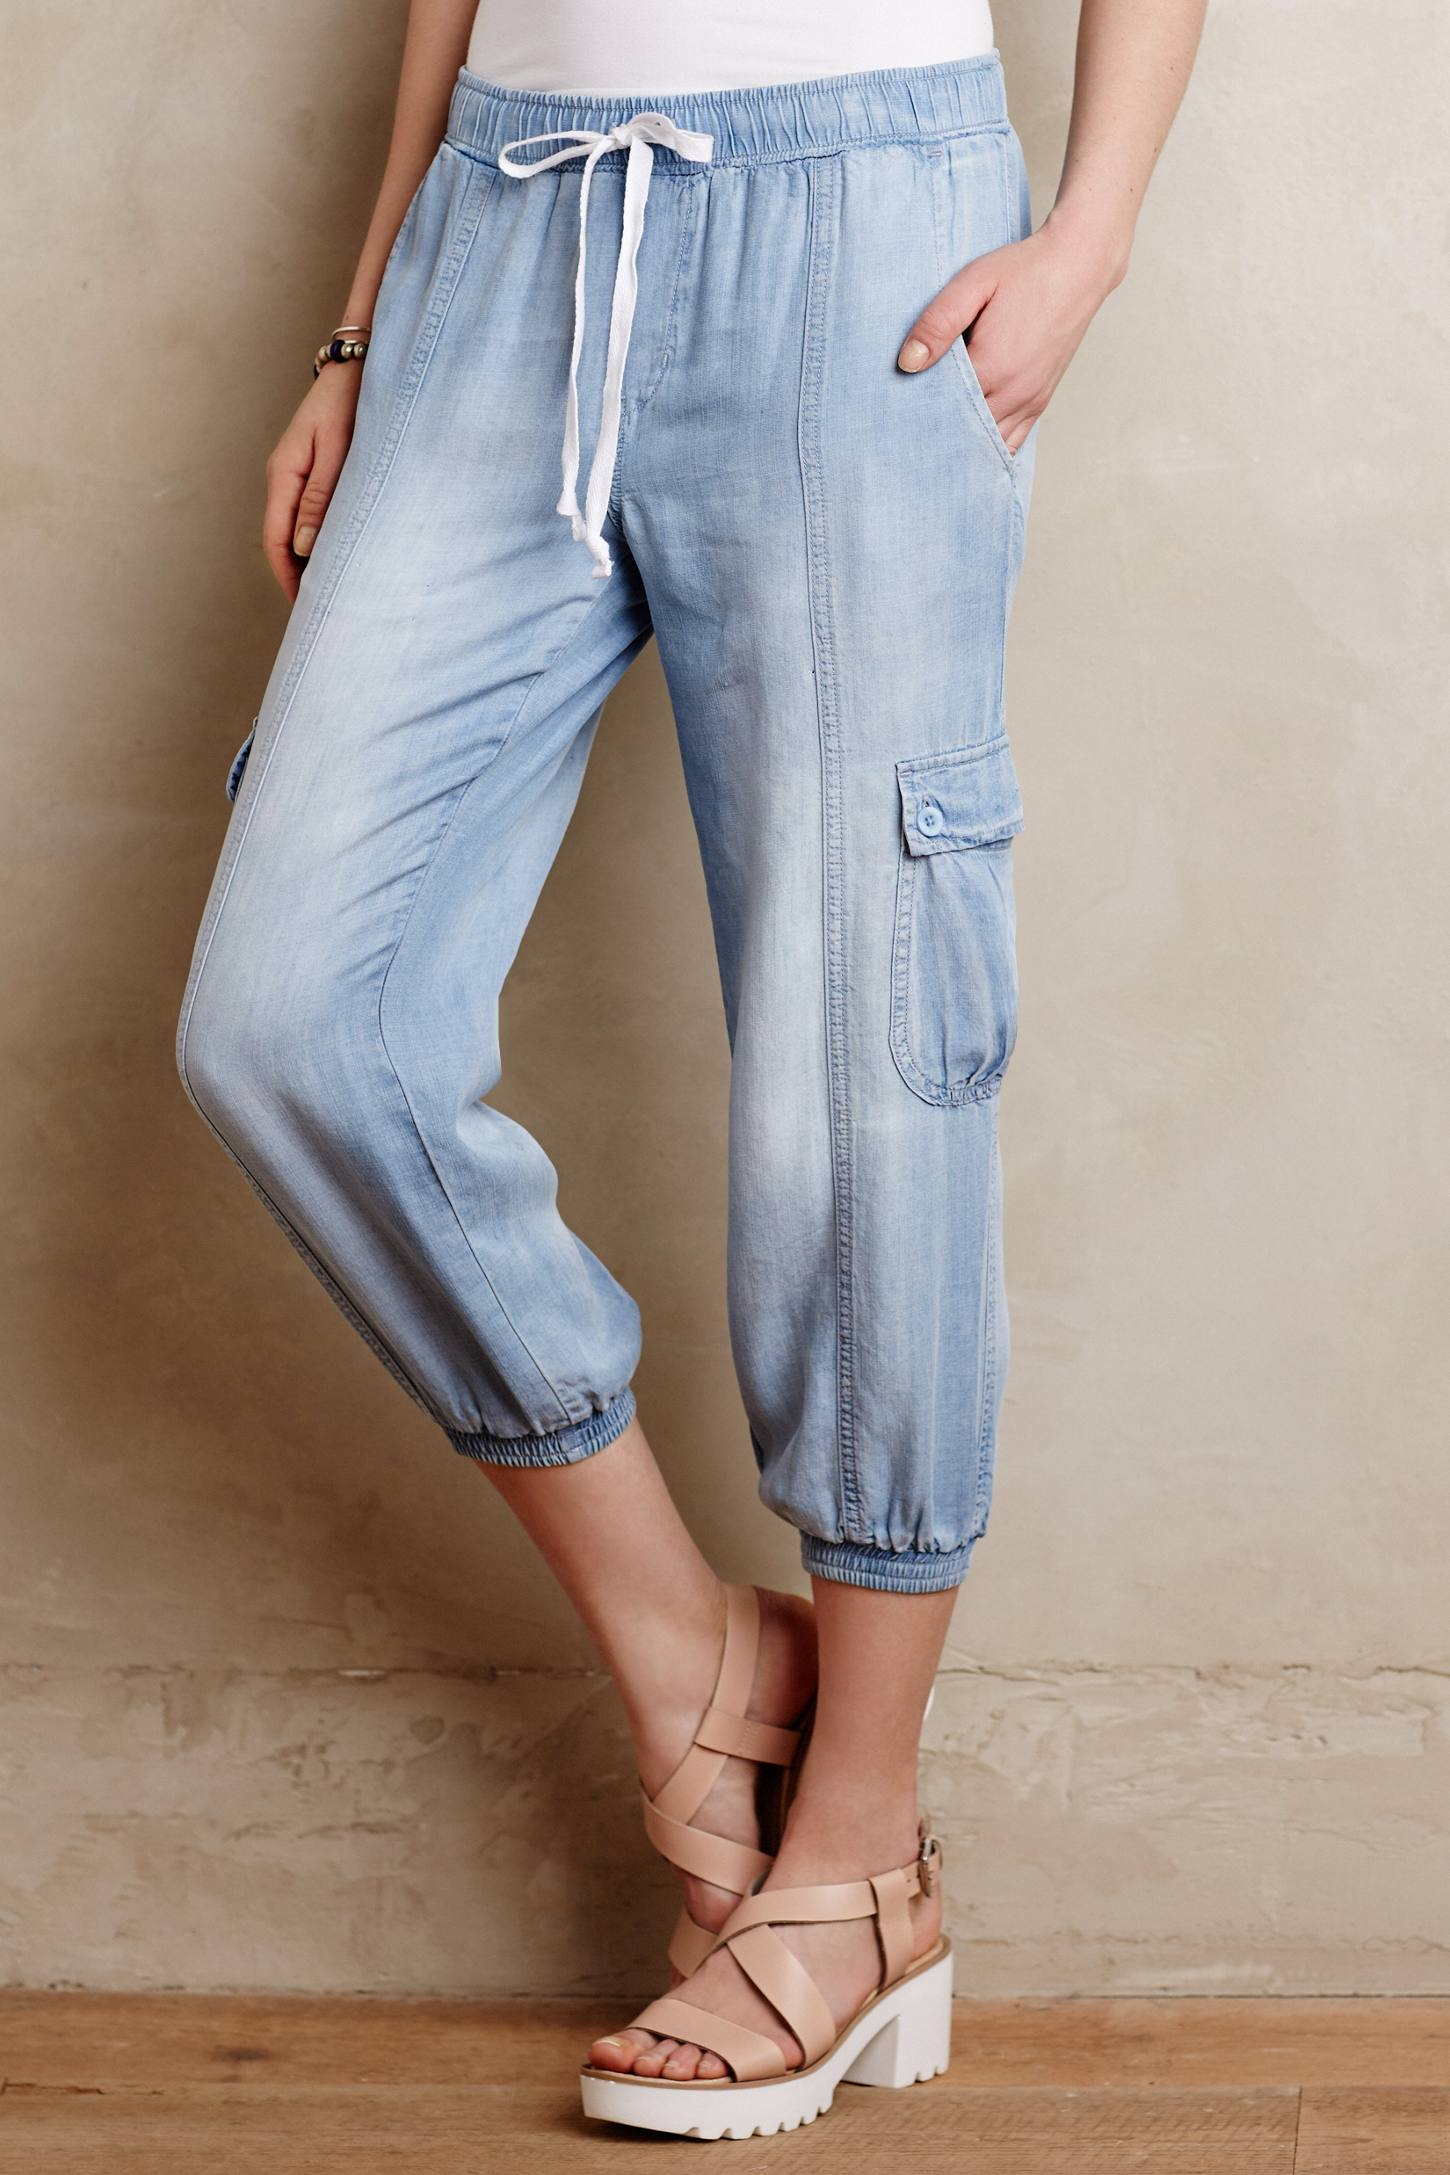 Women Fleece Lined Jeans